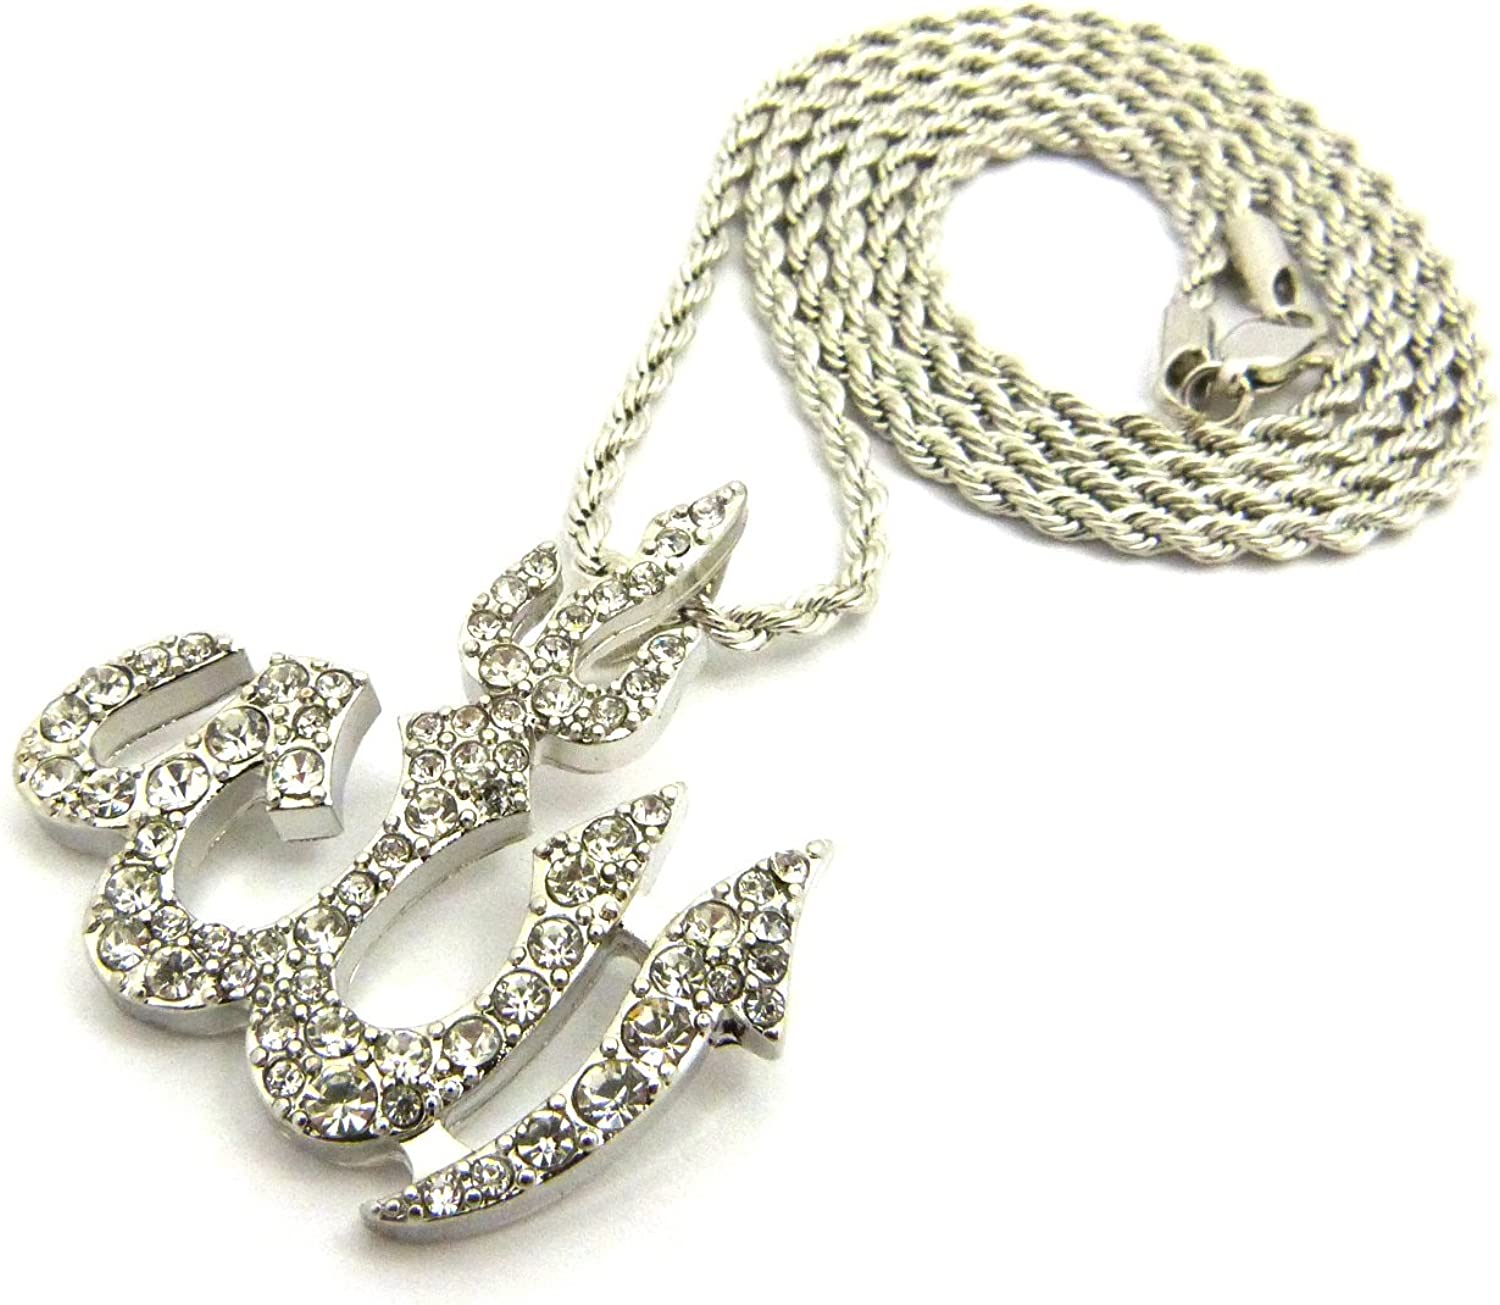 XQP44R NEW ICED OUT ALLAH PENDANT /& 24 BOX//CUBAN//ROPE CHAIN HIP HOP NECKLACE